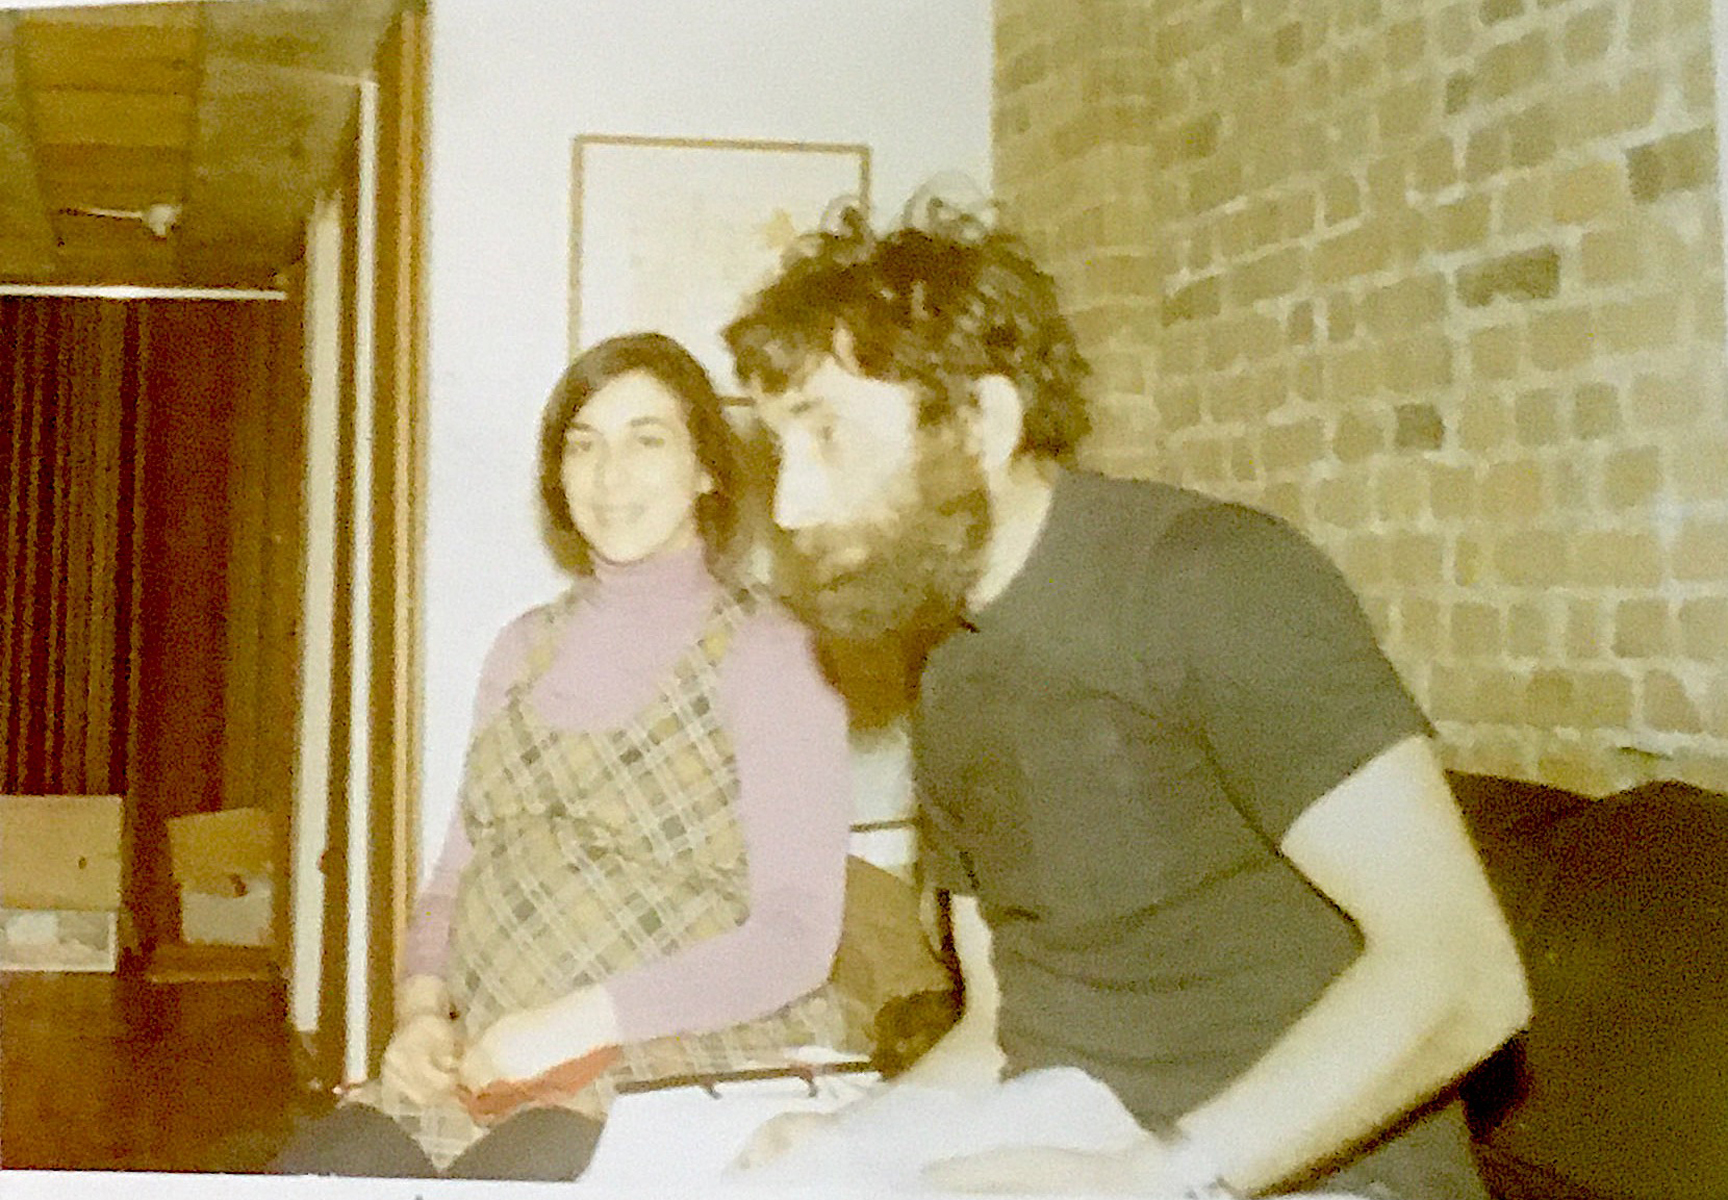 My mother, Martha Moses, pregnant with me and my father Gunther Moses in what was then their unfinished loft at 16 Greene St., 1971.